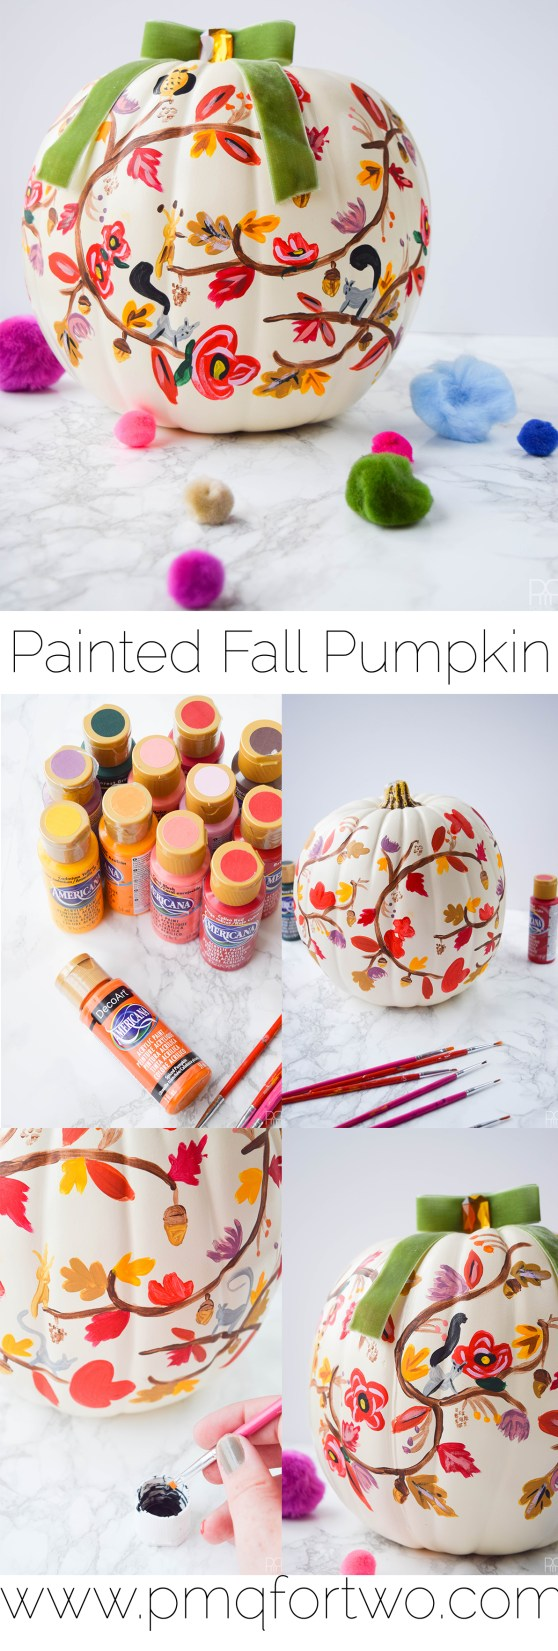 painted-fall-pumpkin-pmq-for-two